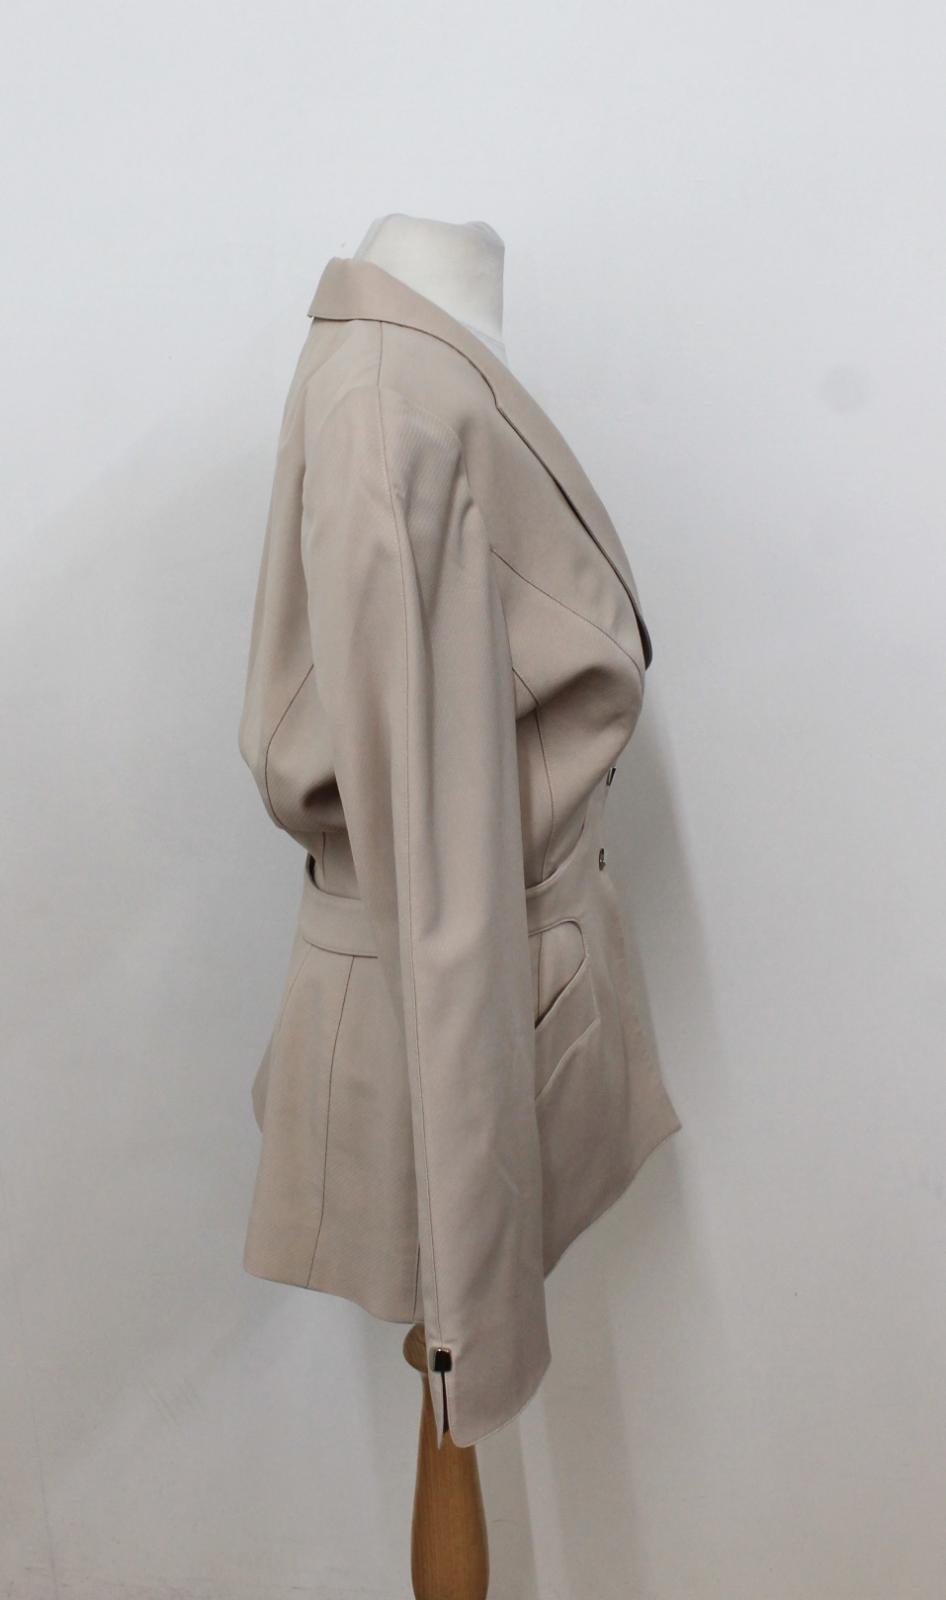 Jacket Breasted Ladies Suit Single Mugler Beige Uk12 Eu40 Wool Light Thierry 8xCqBZn